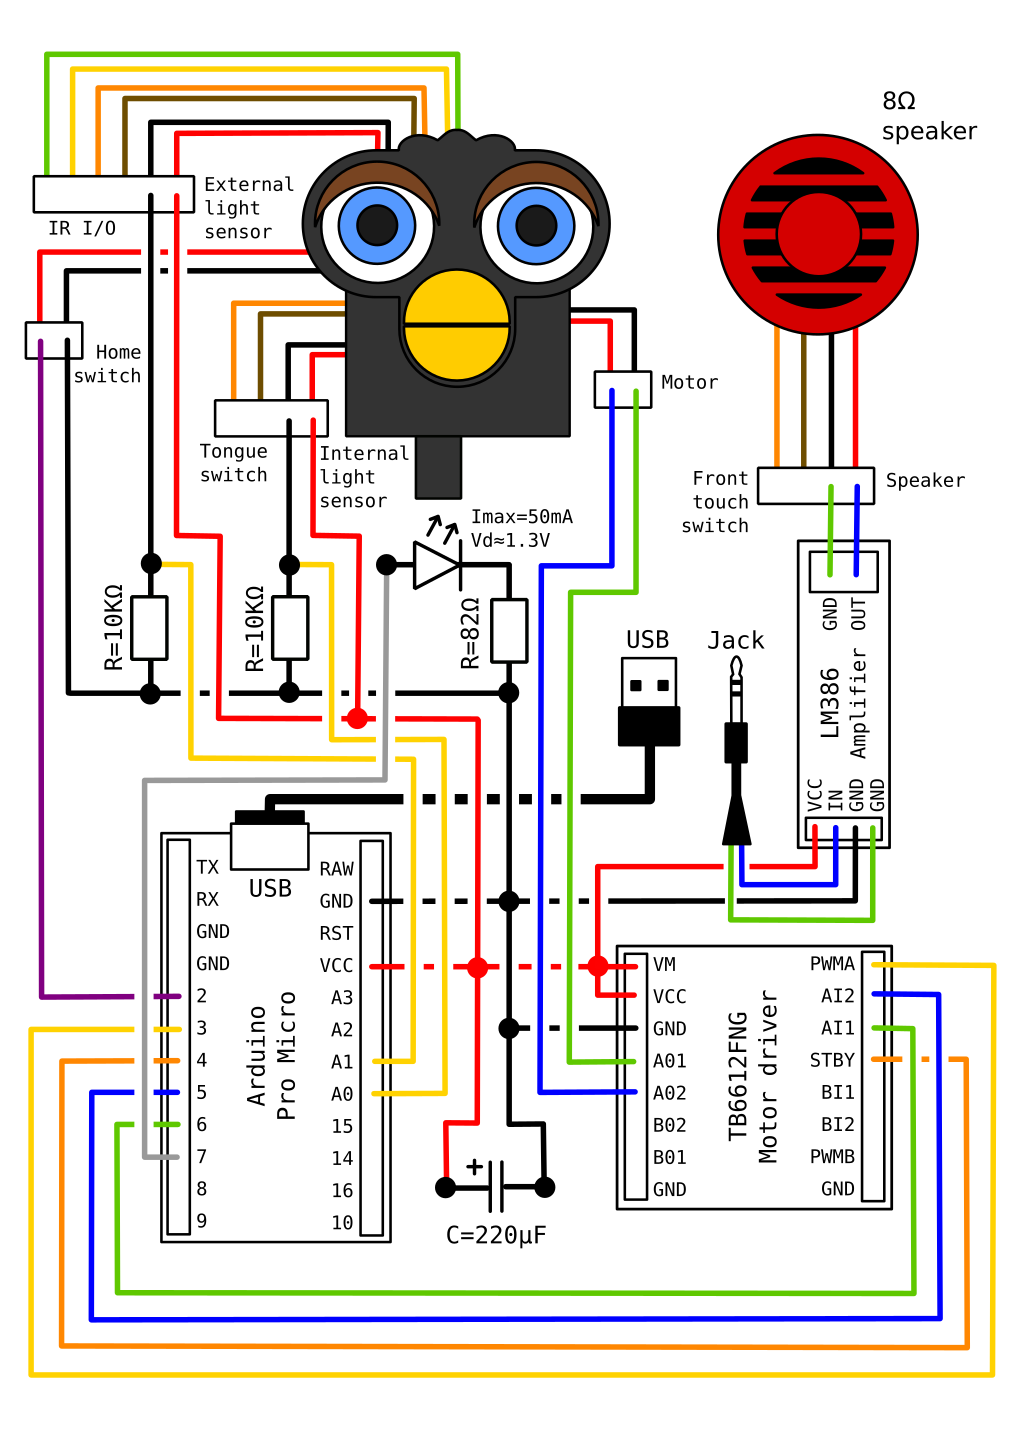 General schematic of connections